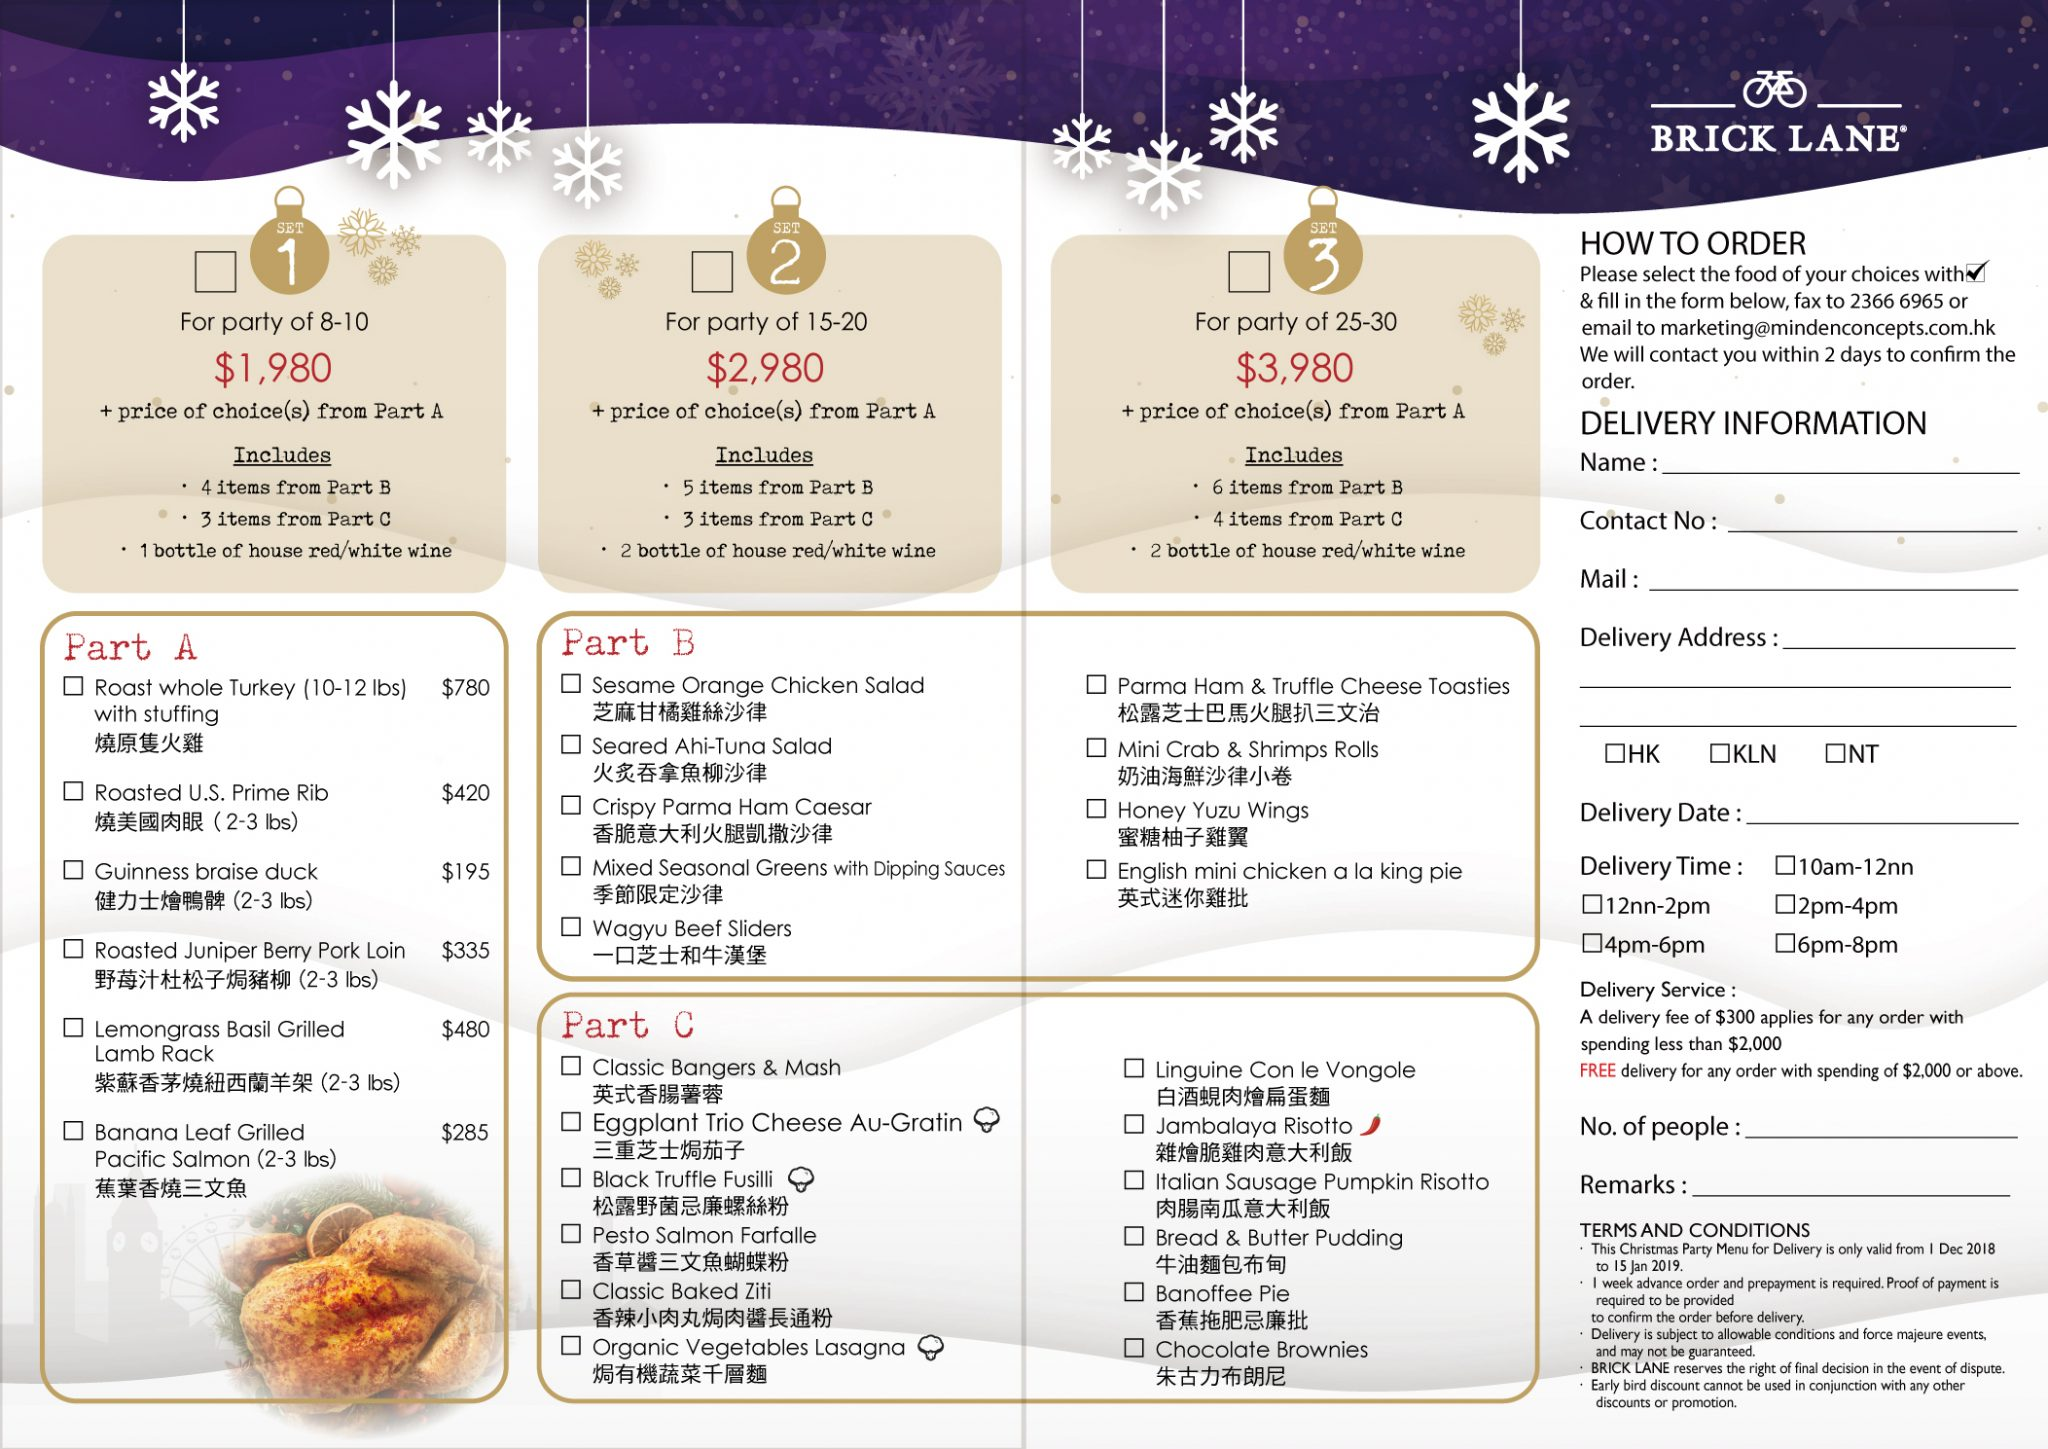 Brick Lane X'mas Takeaway Menu